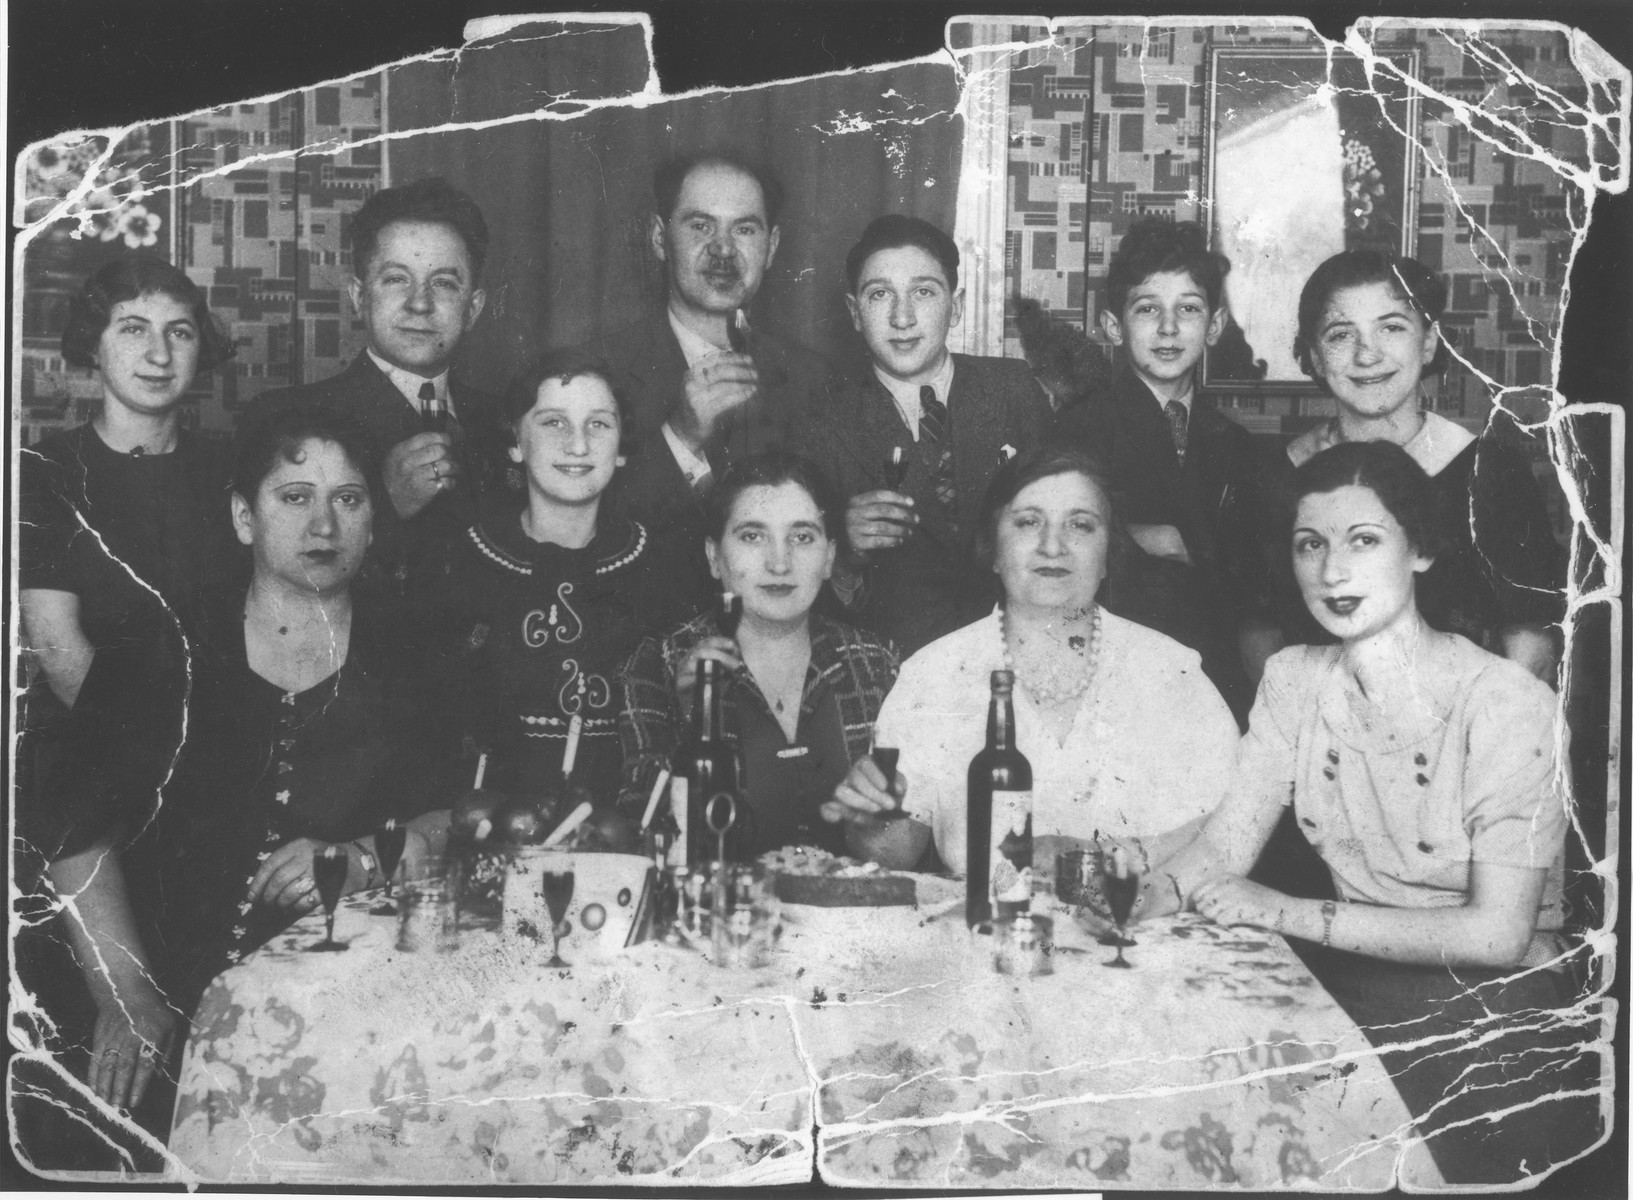 Members of the Edelstein family gather around a table holding liqueur glasses.  The Edelsteins moved to Amsterdam from Warsaw in the interwar period.